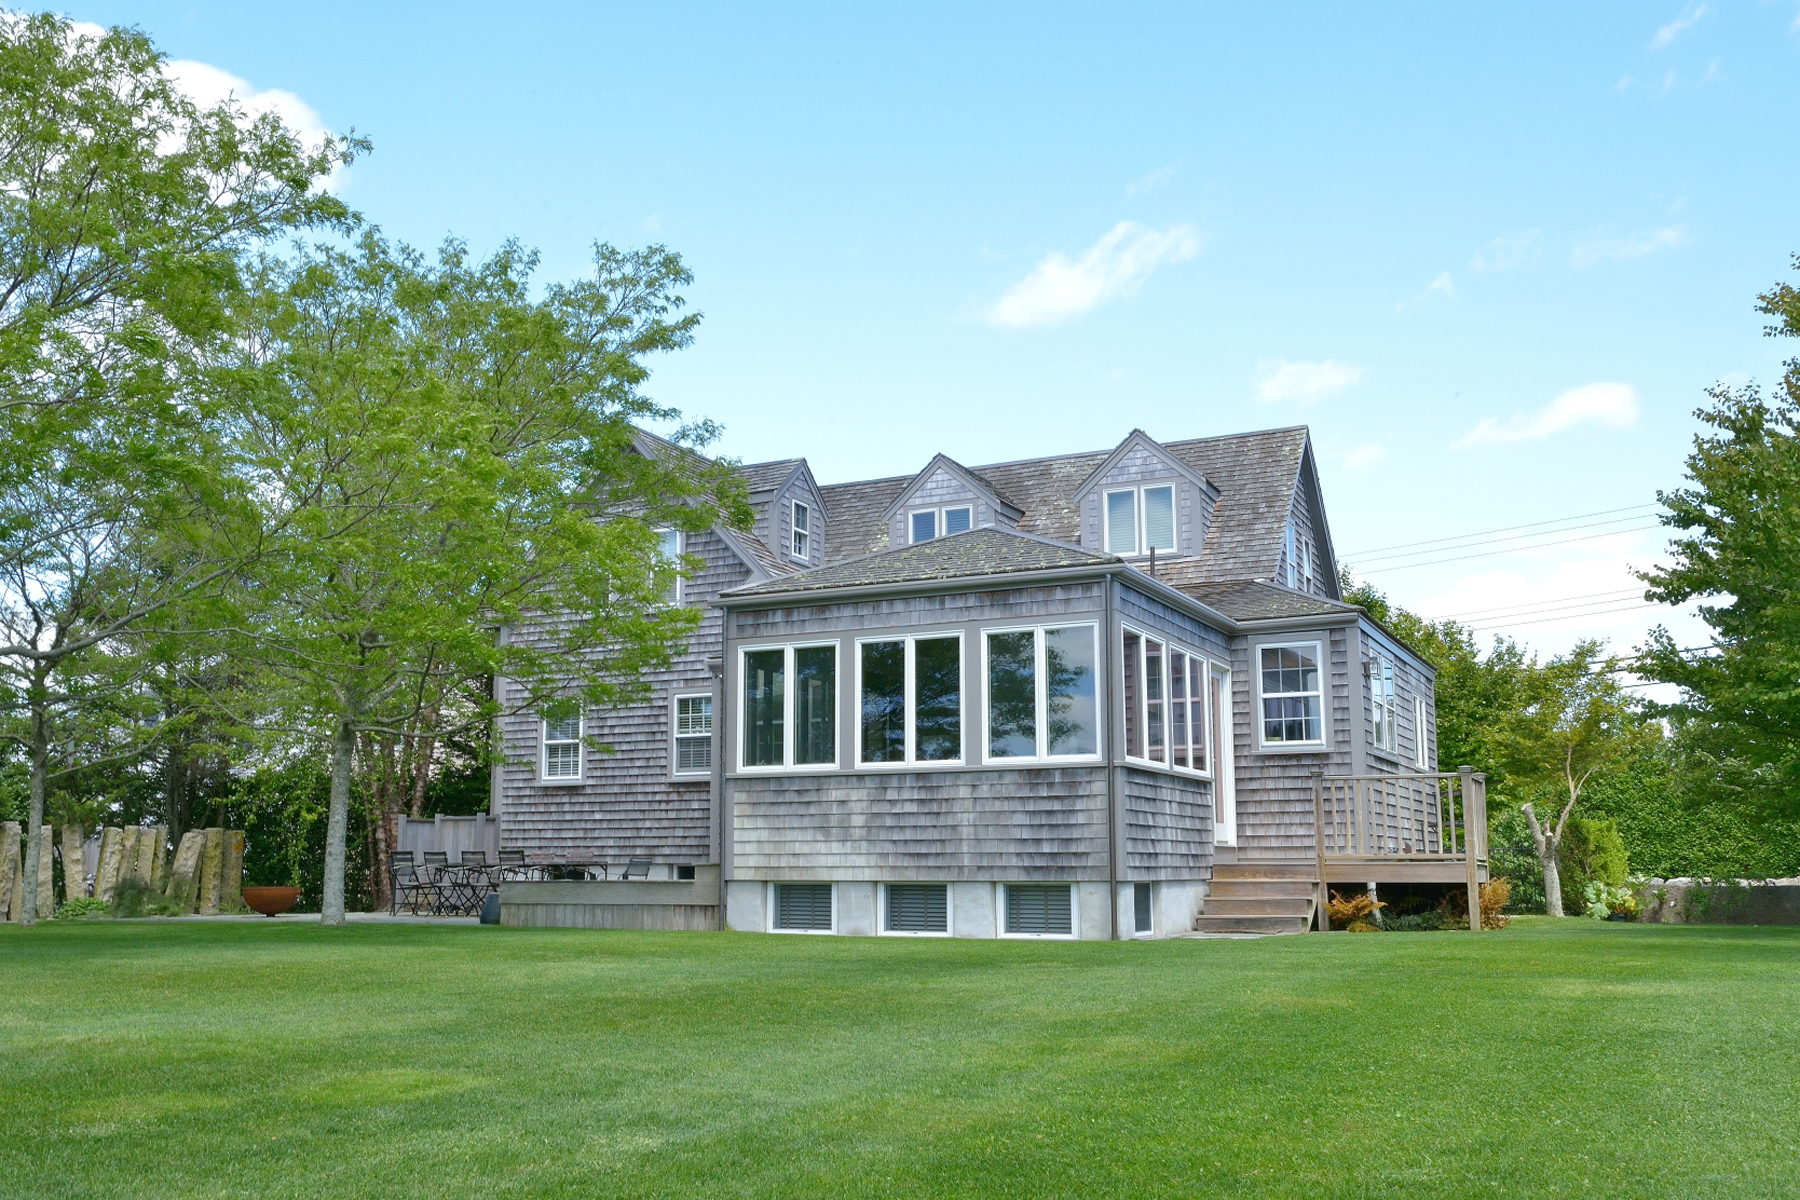 Single Family Home for Sale at Private and Serene! 81 Hummock Pond Road Nantucket, Massachusetts, 02554 United States